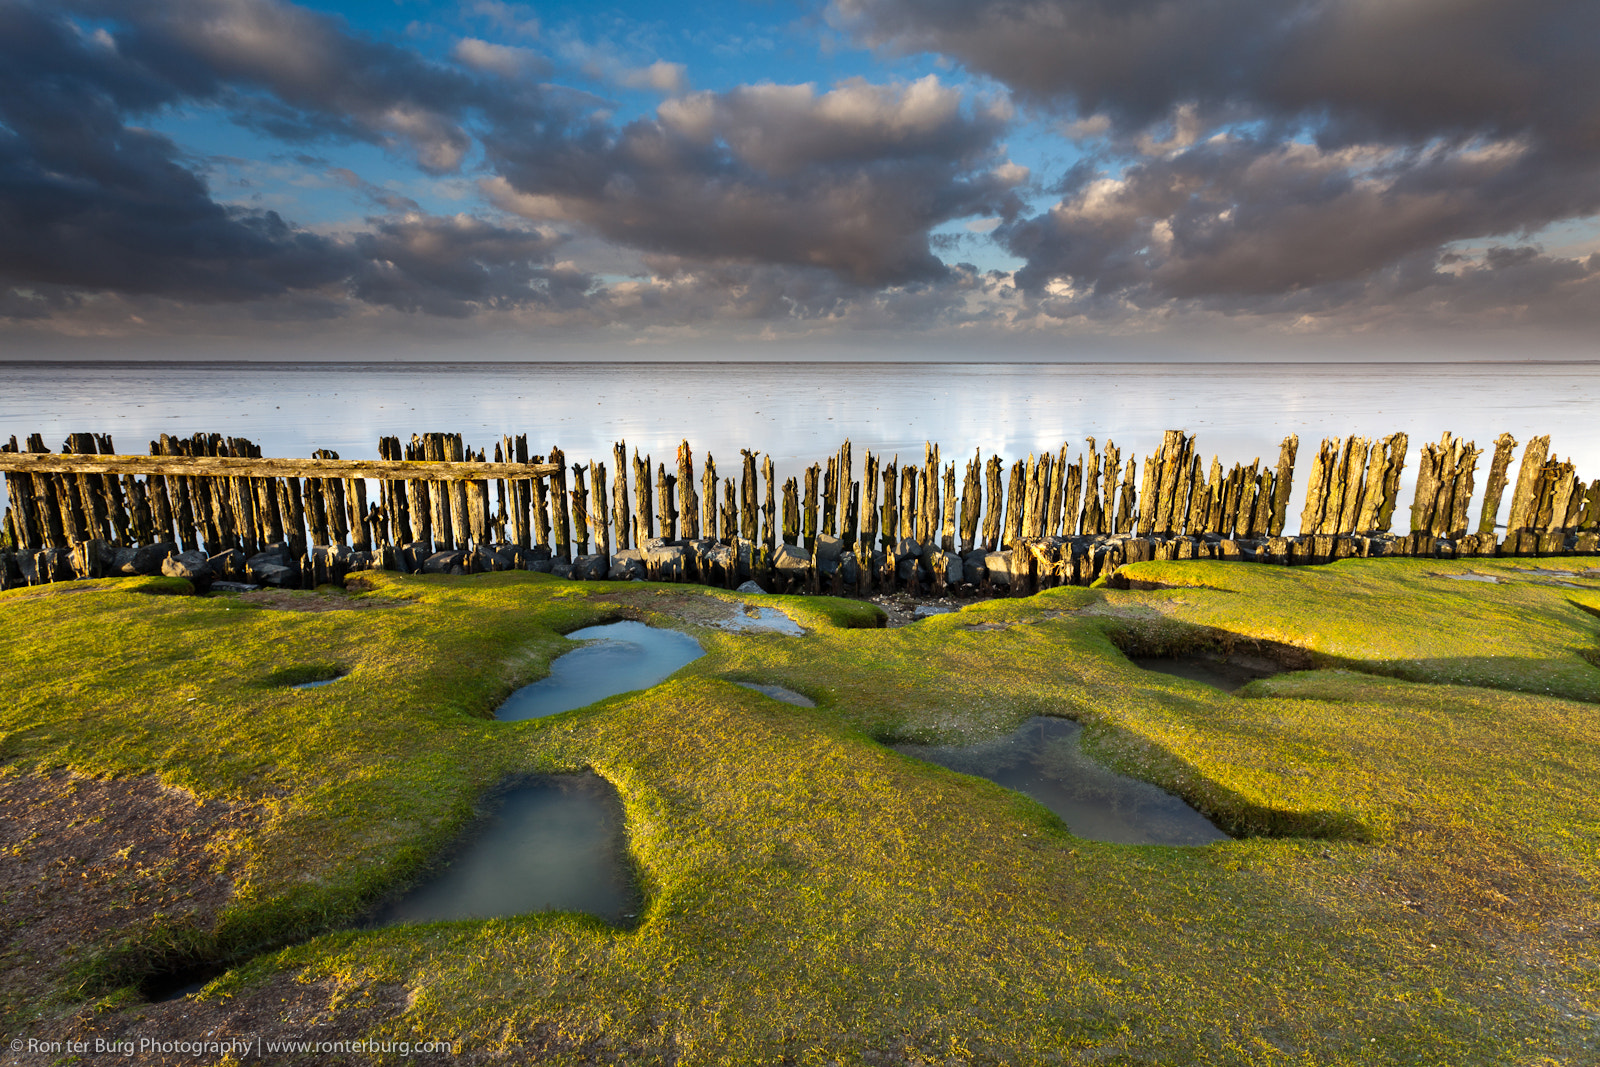 Photograph Seashapes at the Waddensea by Ron ter Burg on 500px